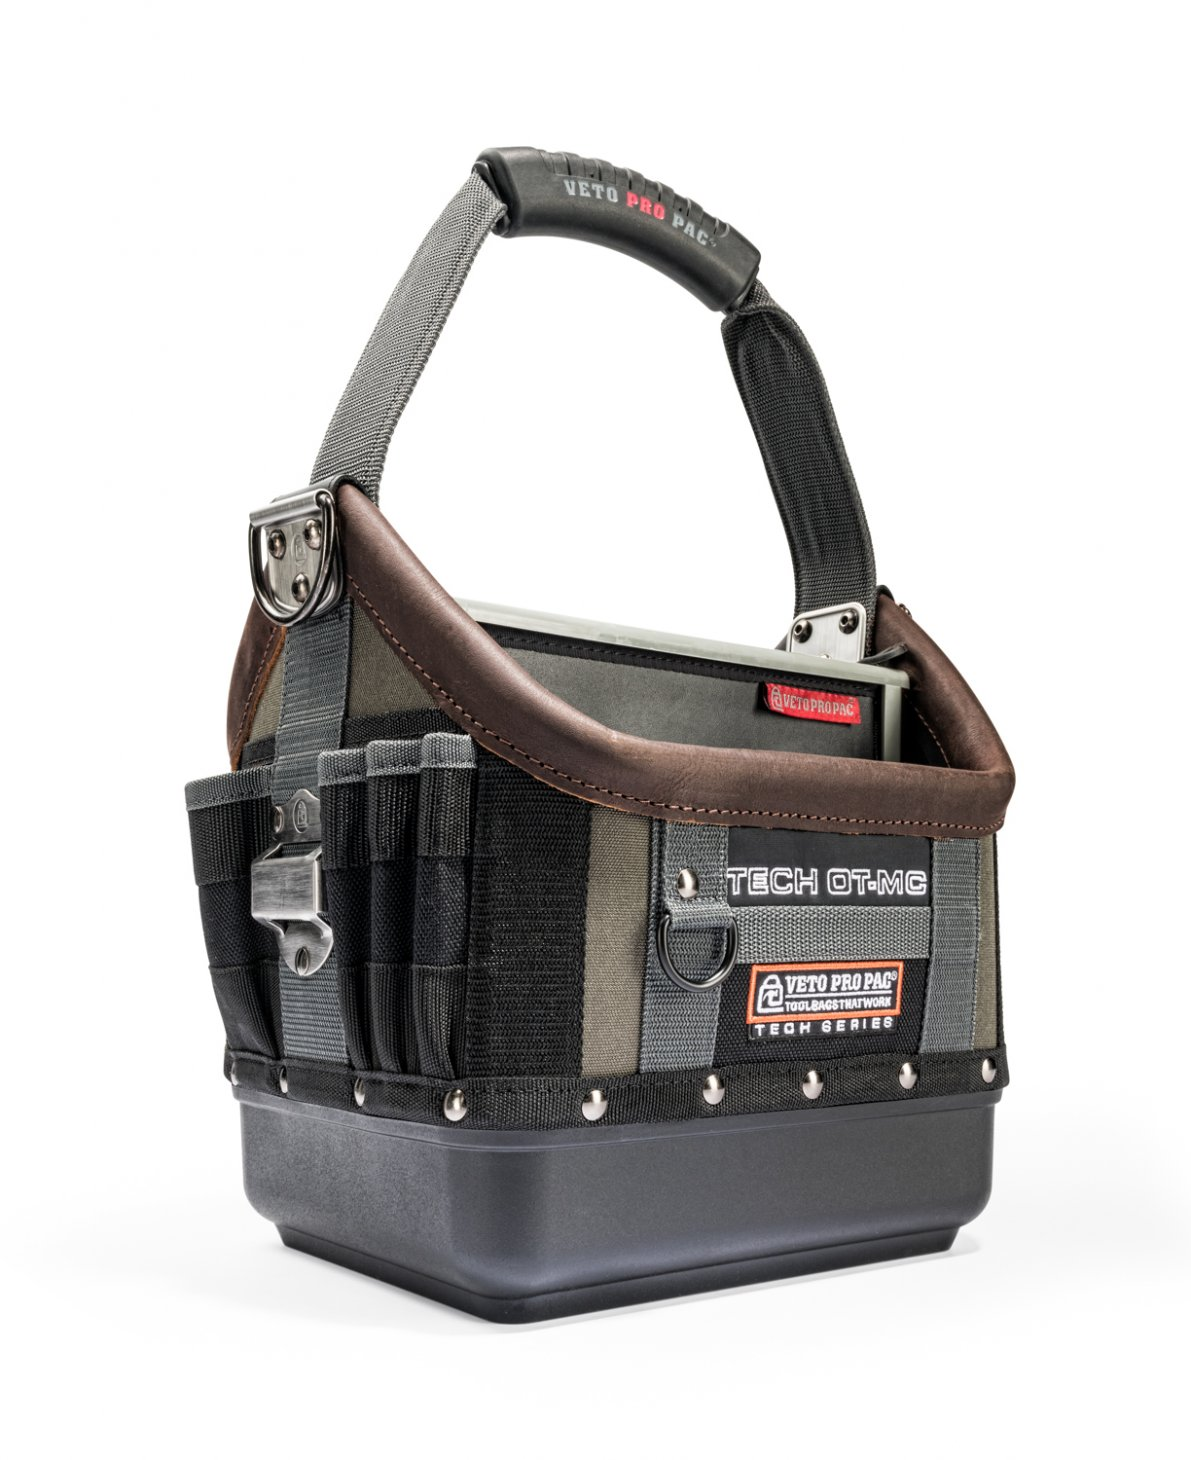 Veto Pro Pac TECH-OT-MC Open Top Tool Bag